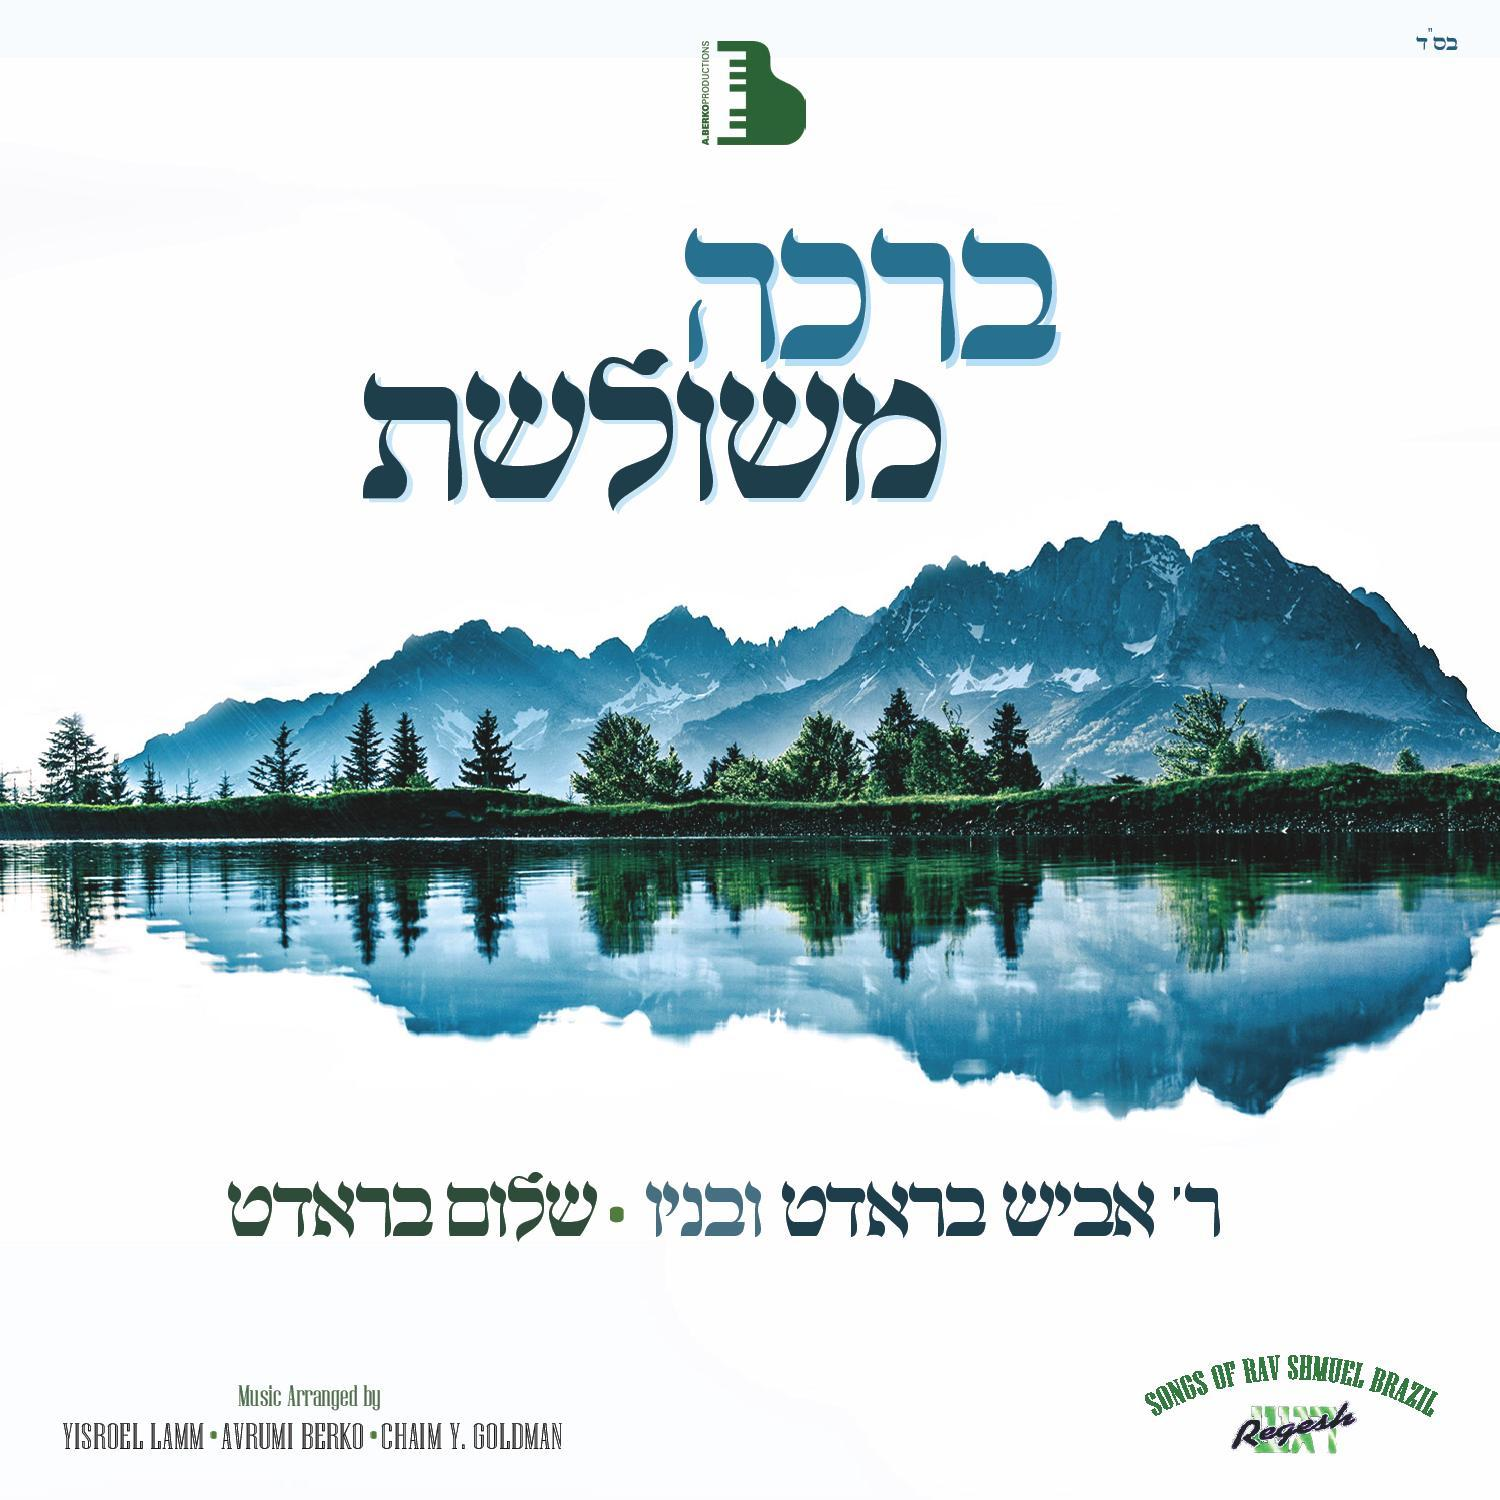 Abish & Shulem Brodt - Brocho Meshuleshes